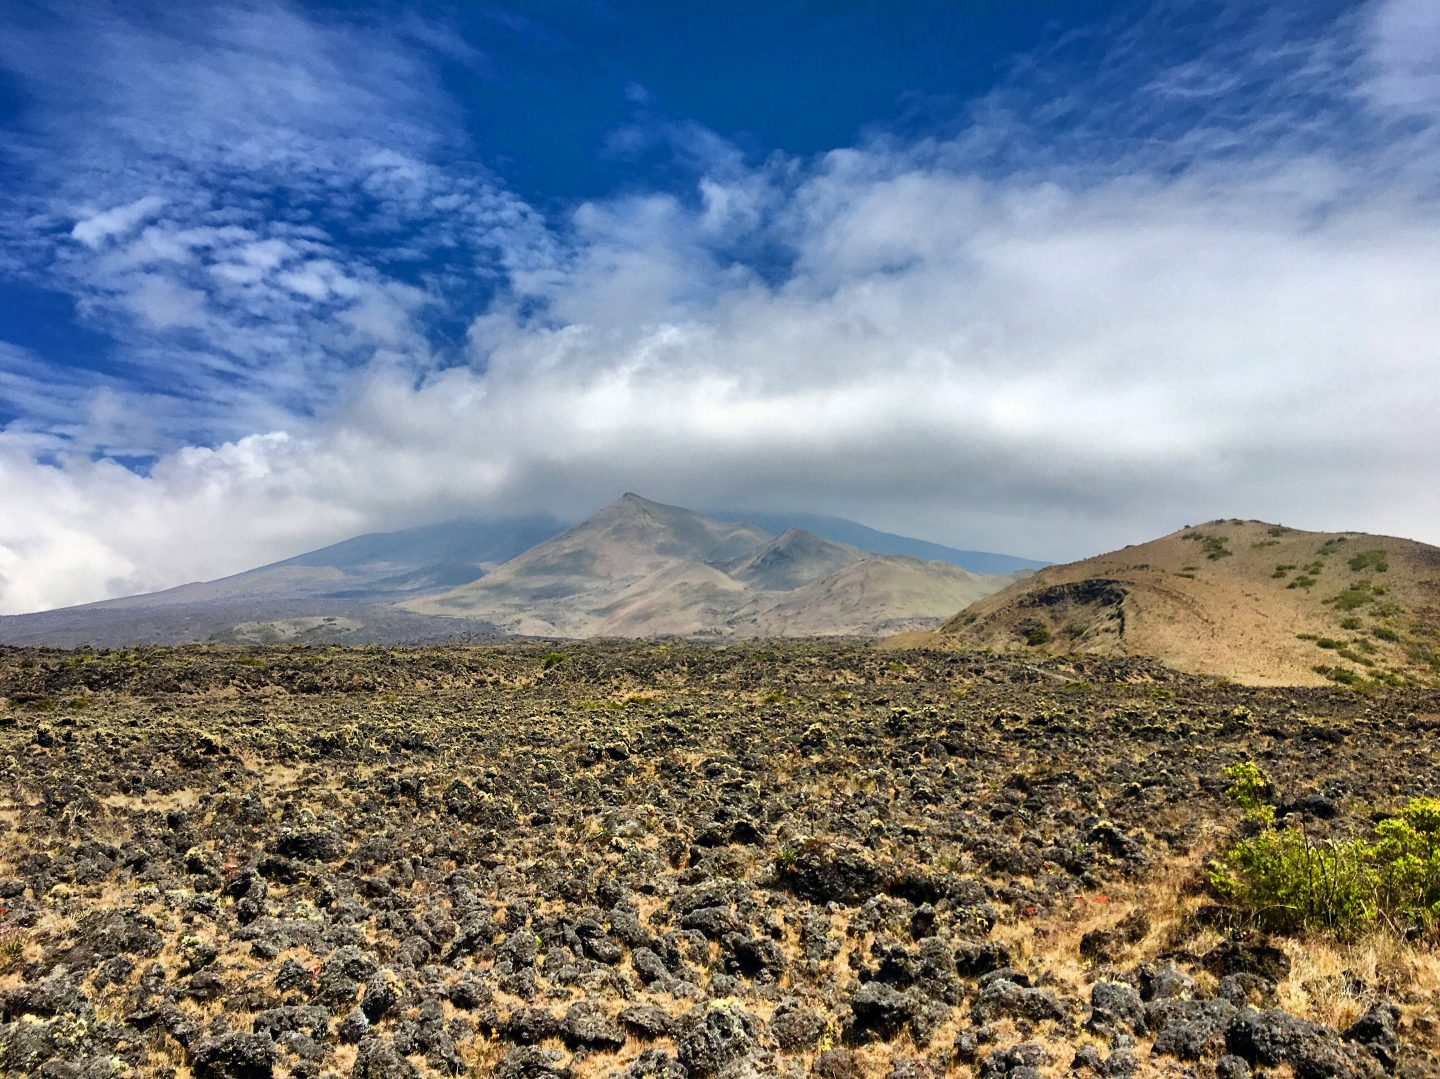 Climbing Mount Cameroon – Day Two